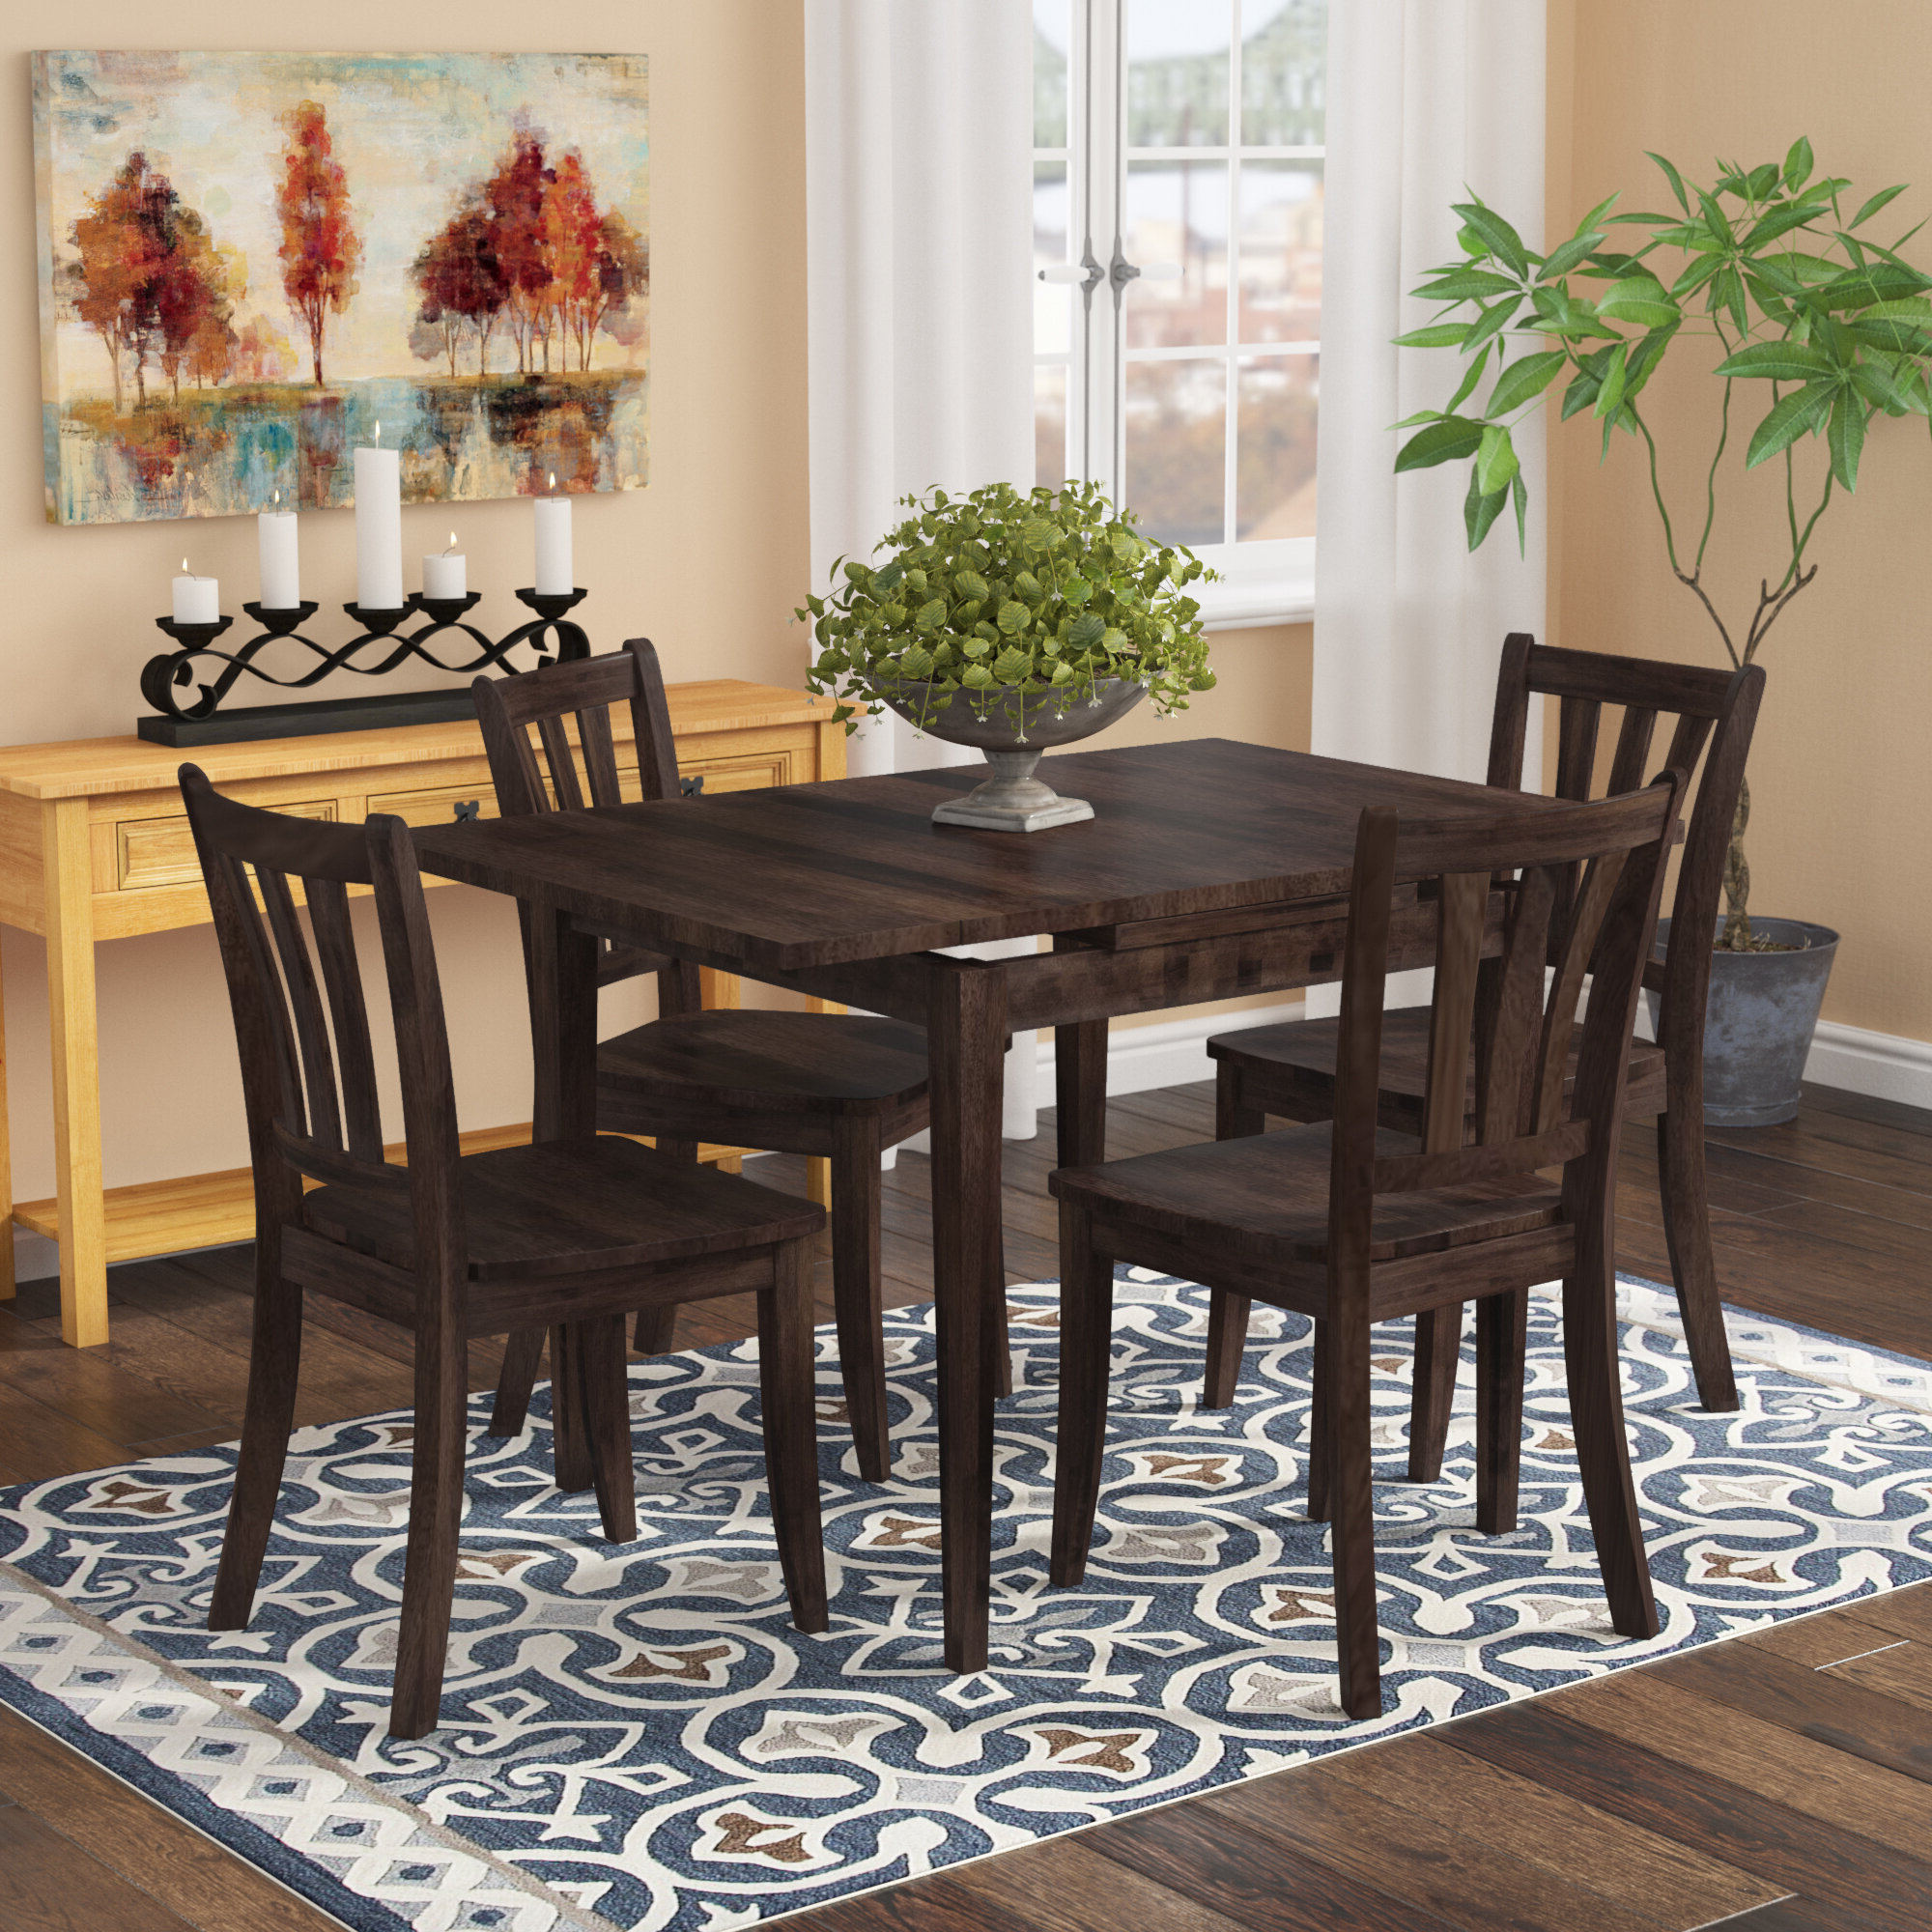 Liggett 5 Piece Extendable Solid Wood Dining Set Inside Favorite Goodman 5 Piece Solid Wood Dining Sets (Set Of 5) (Gallery 12 of 20)